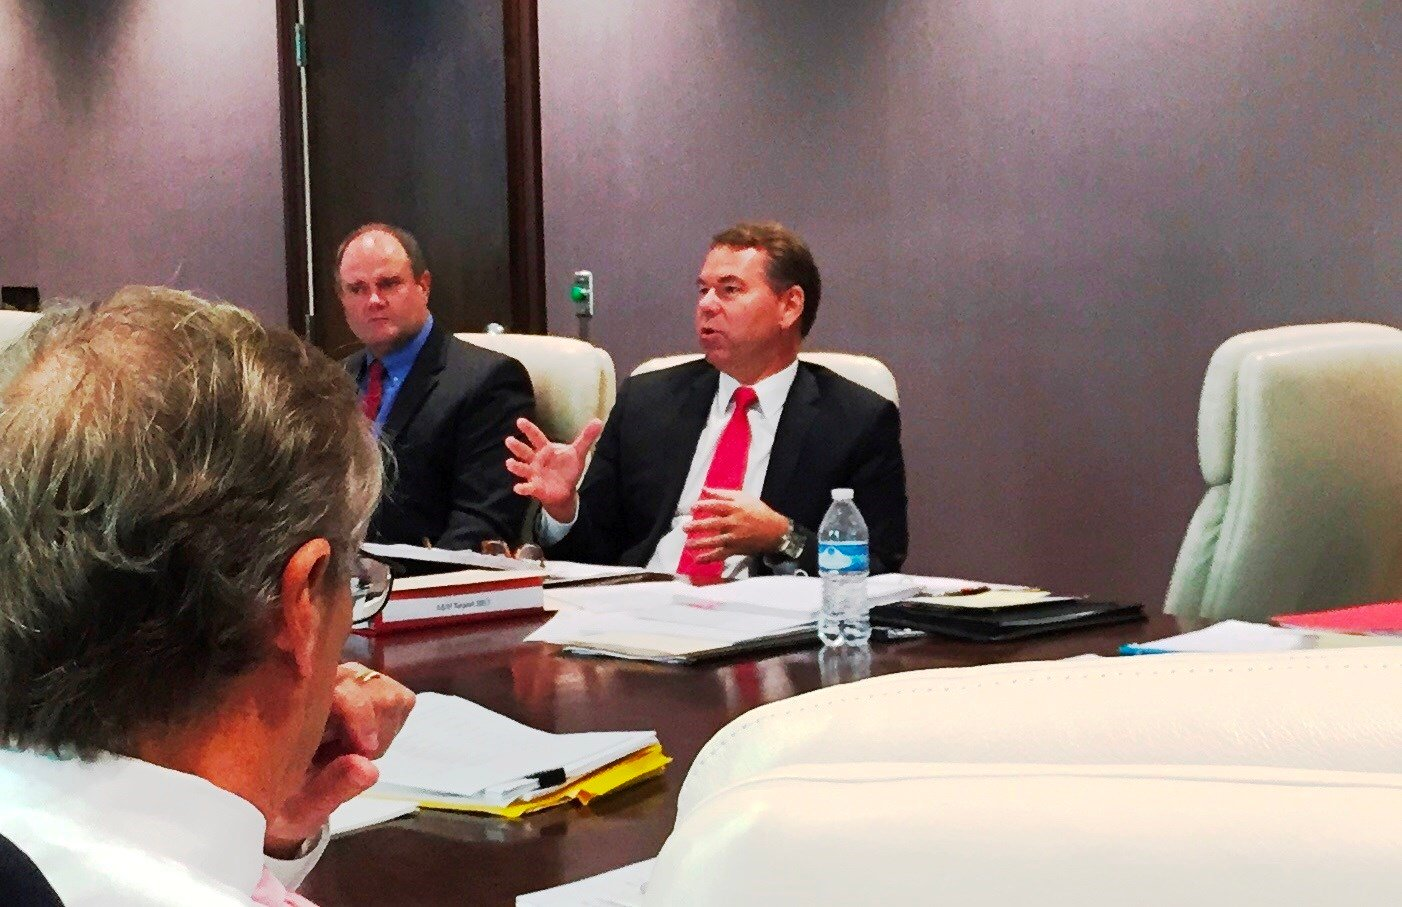 Vince Tyra, center, at a meeting of the U of L Foundation board of directors on Sept. 28, 2017